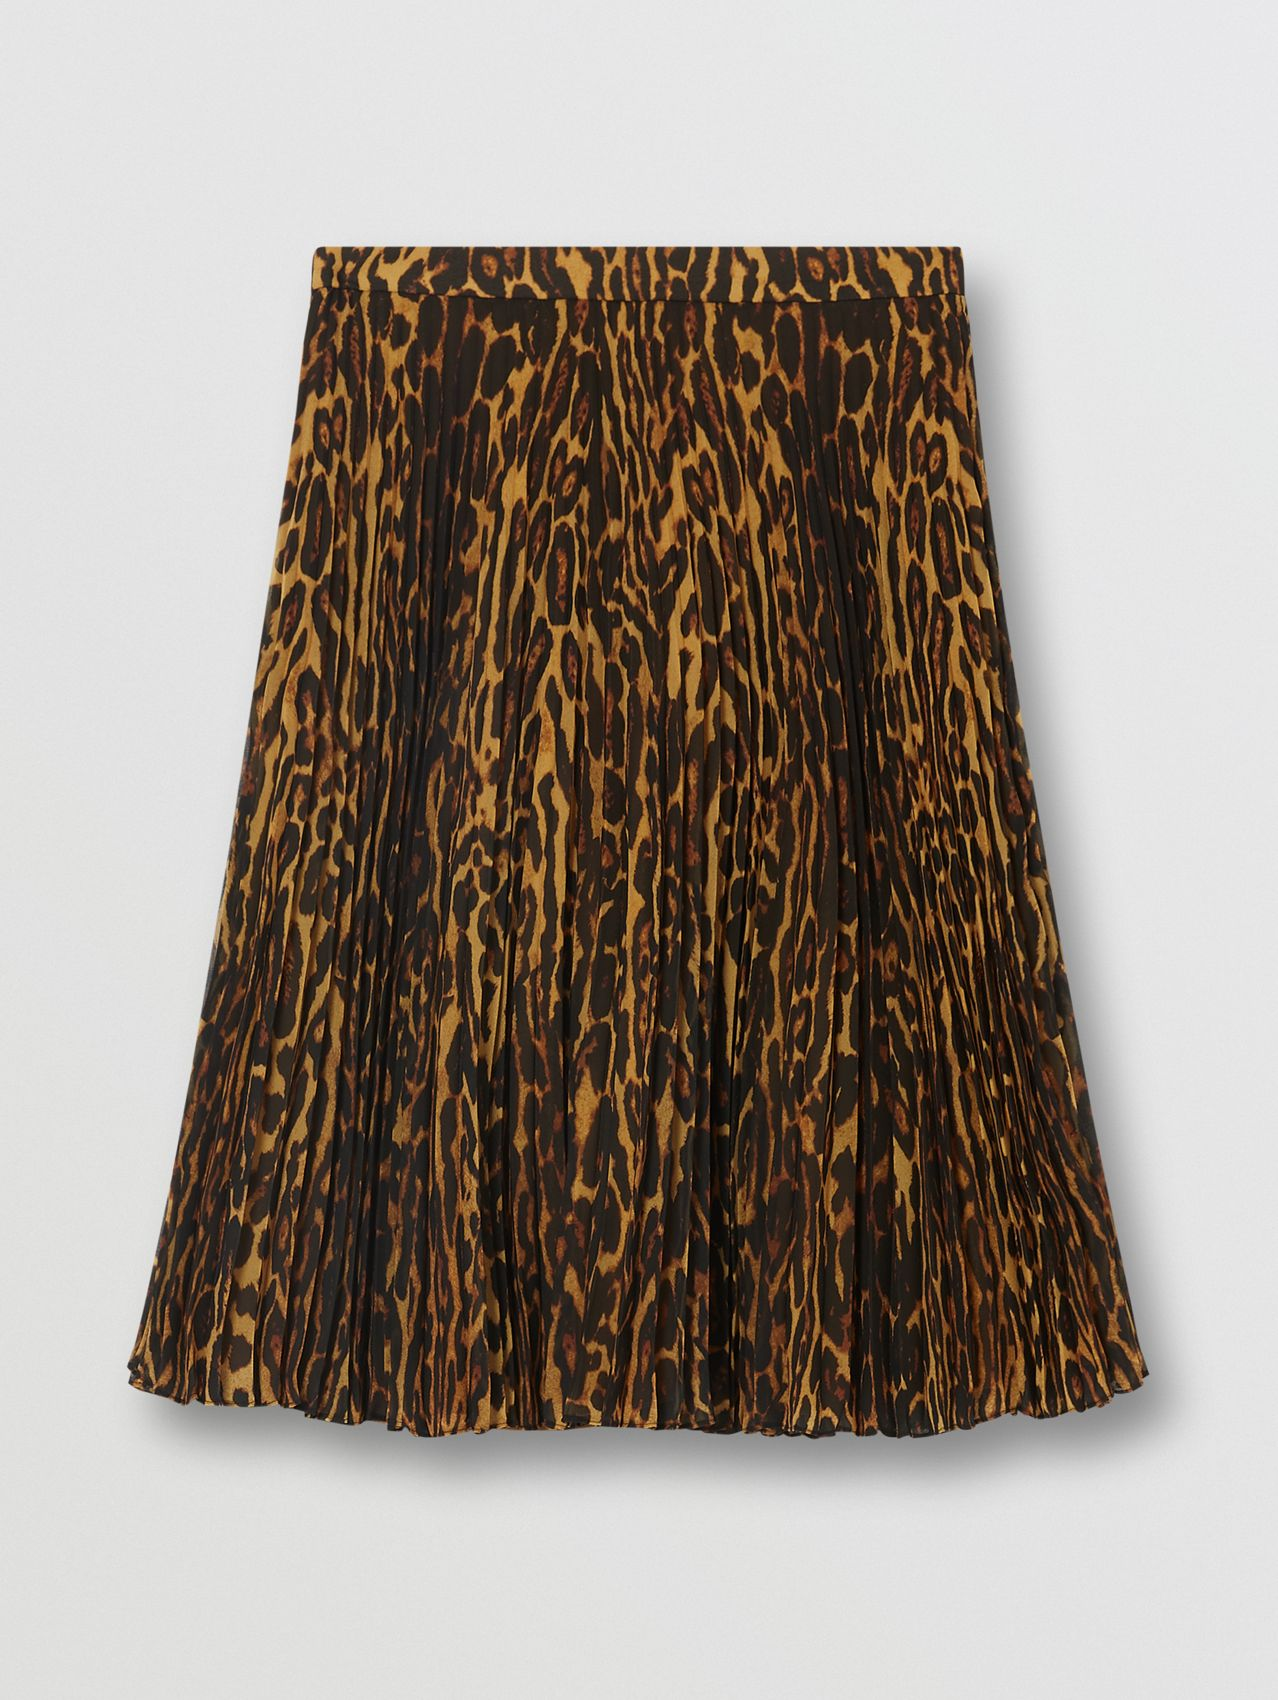 Leopard Print Pleated Skirt in Dark Mustard